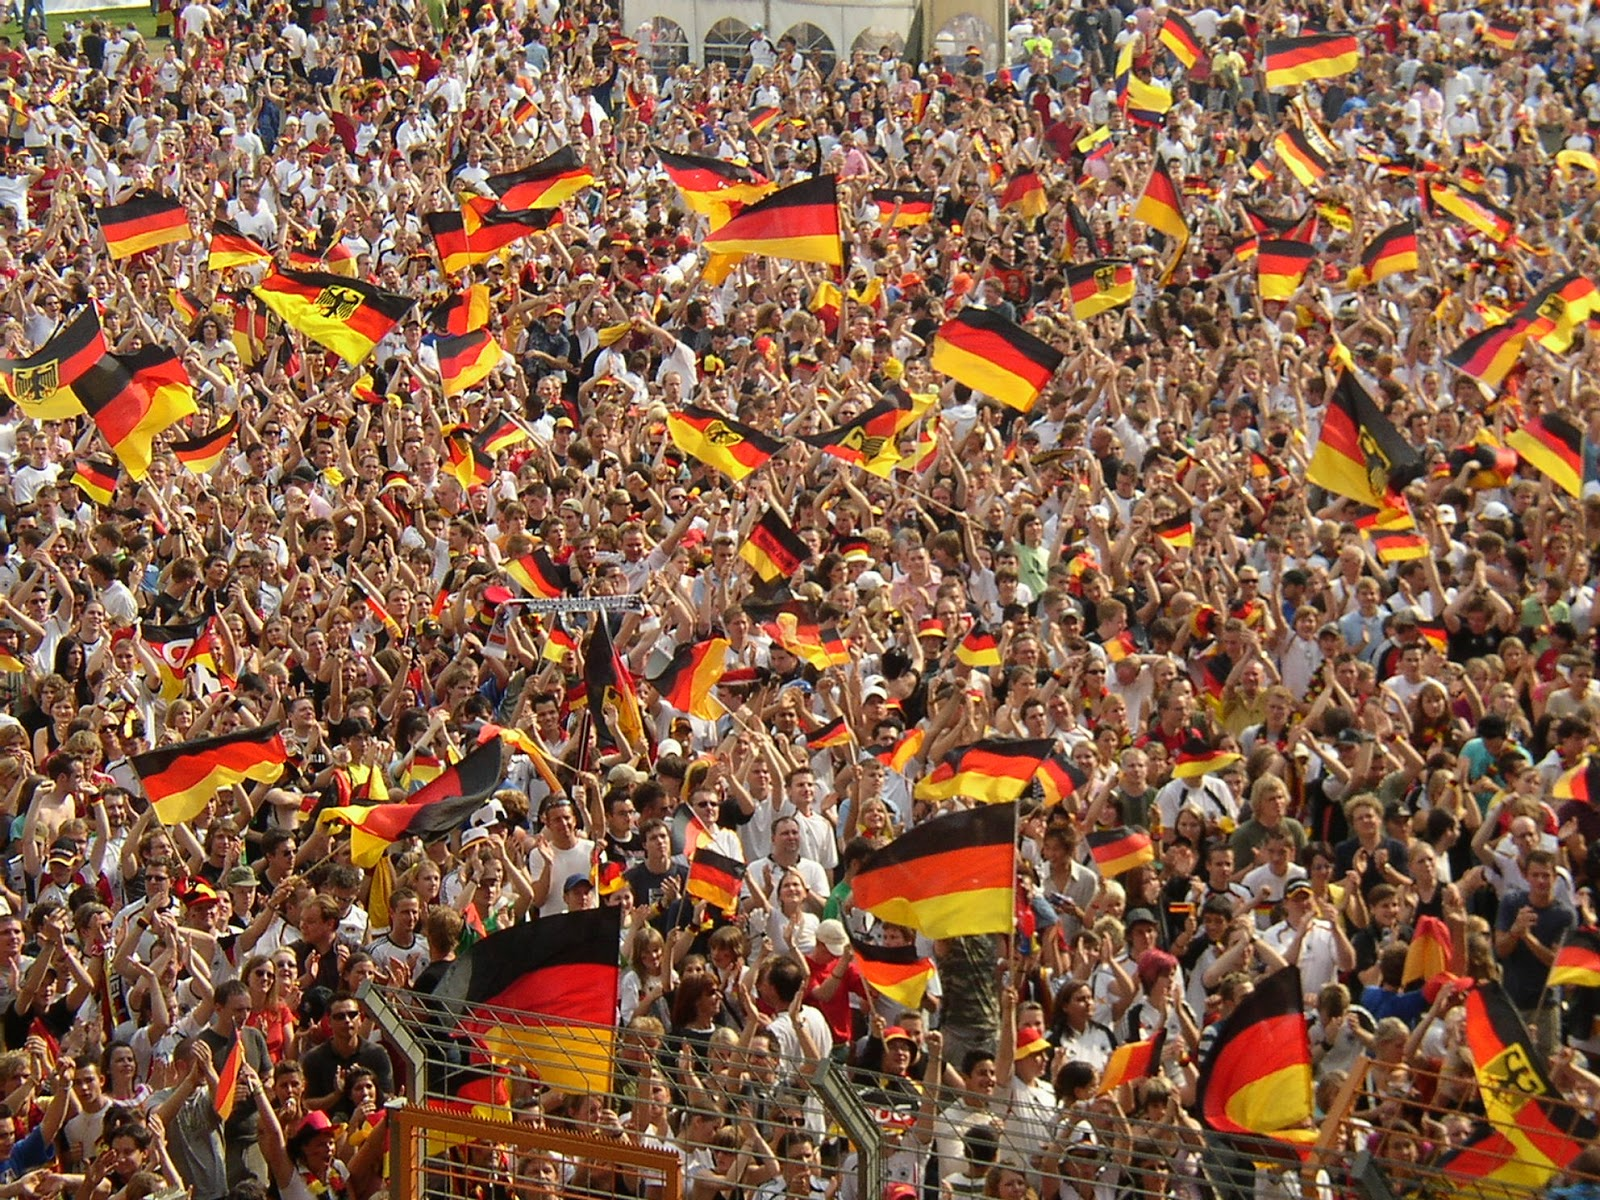 http://arabingermany.com/wp-content/uploads/2016/05/World_Cup_2006_German_fans_at_Bochum.jpg